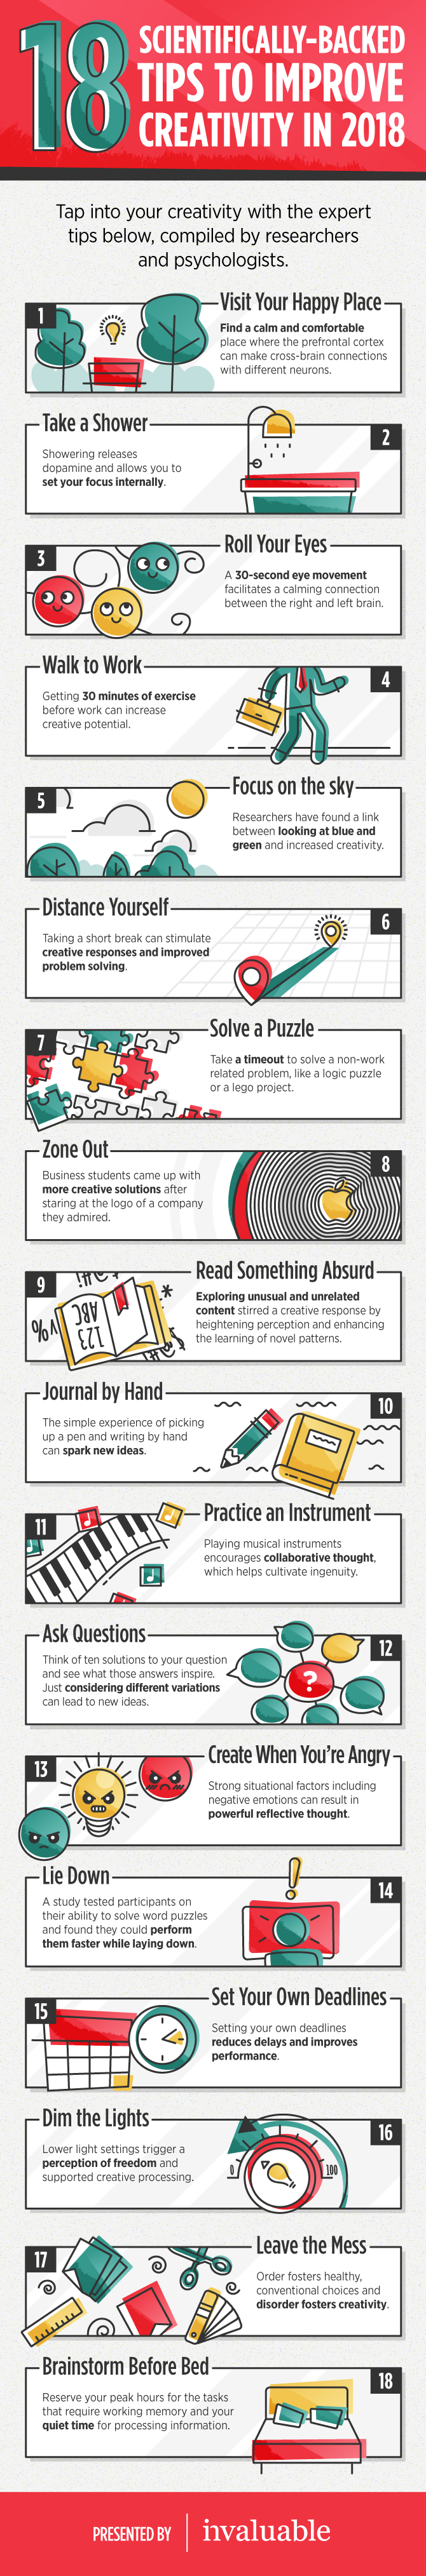 18 Scientifically-Backed Tips to Improve Creativity - #infographic